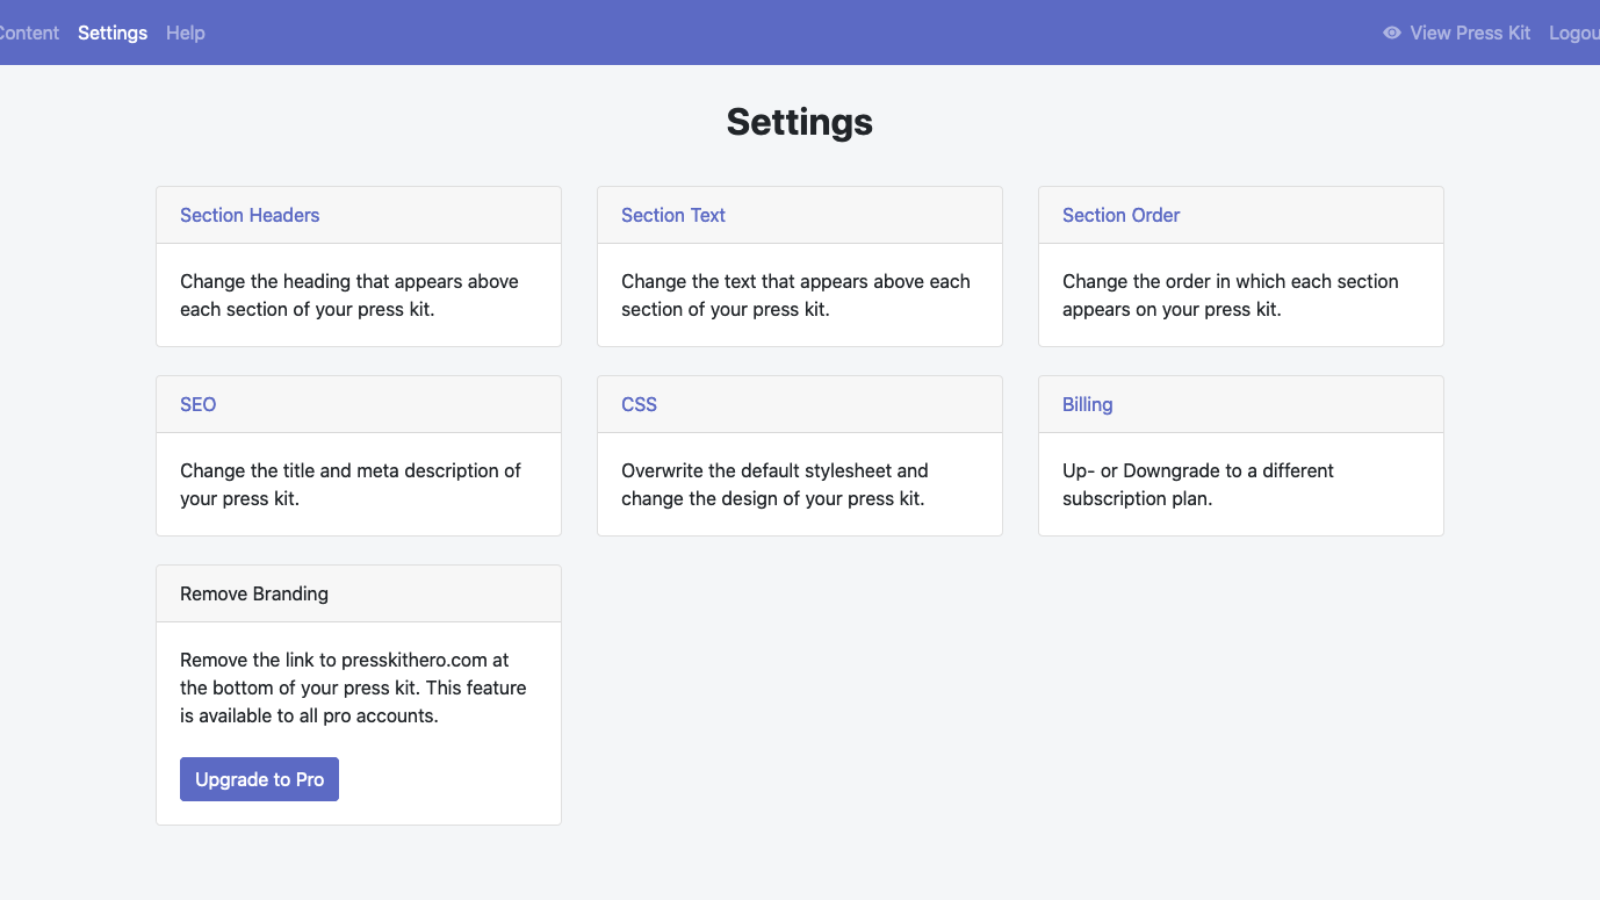 Settings view of the app